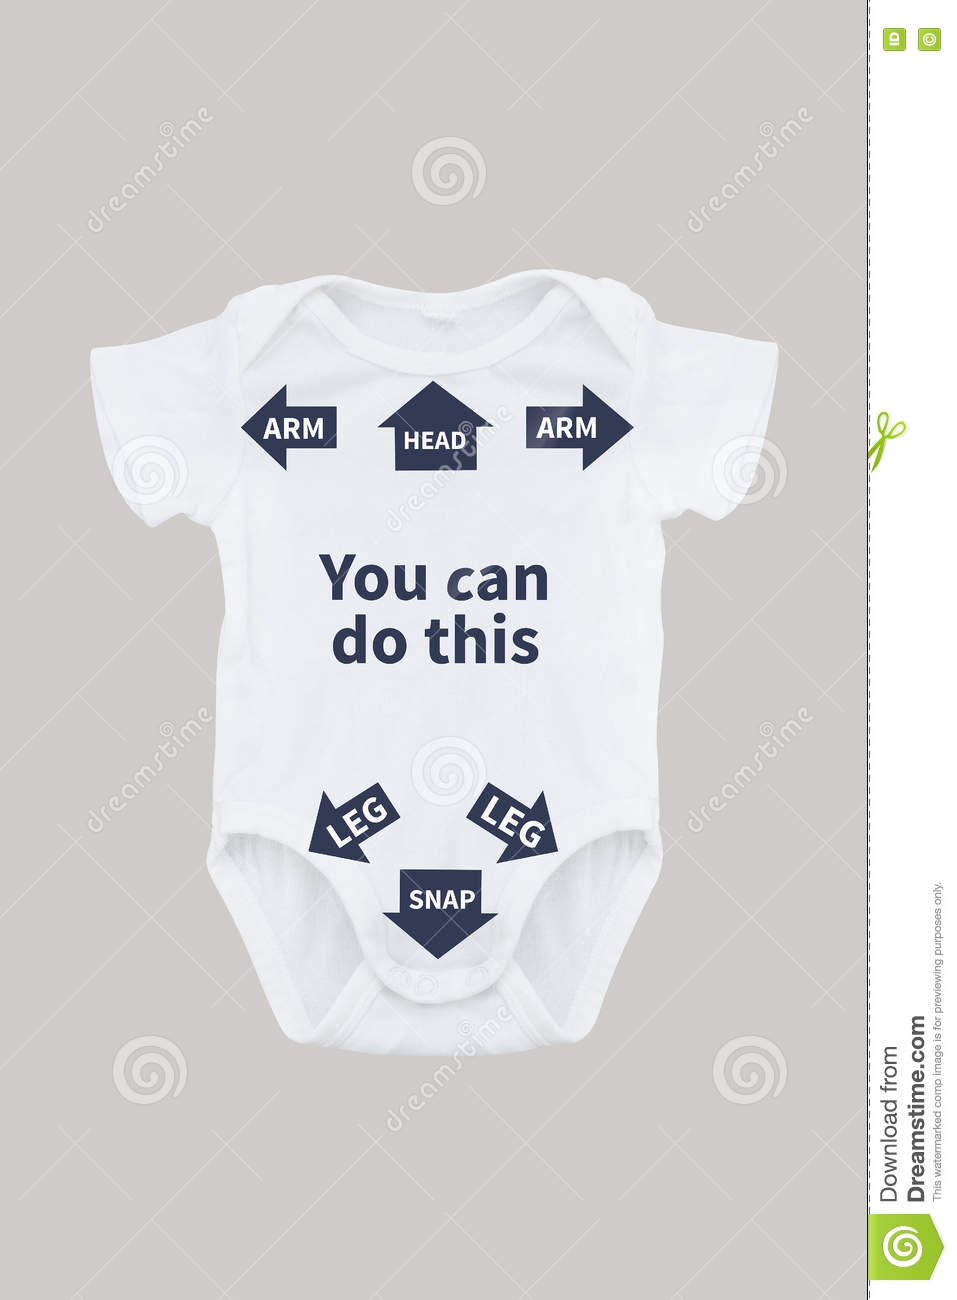 35fb73aee Baby Onesie With Instructions For Dad Stock Photo - Image of white ...